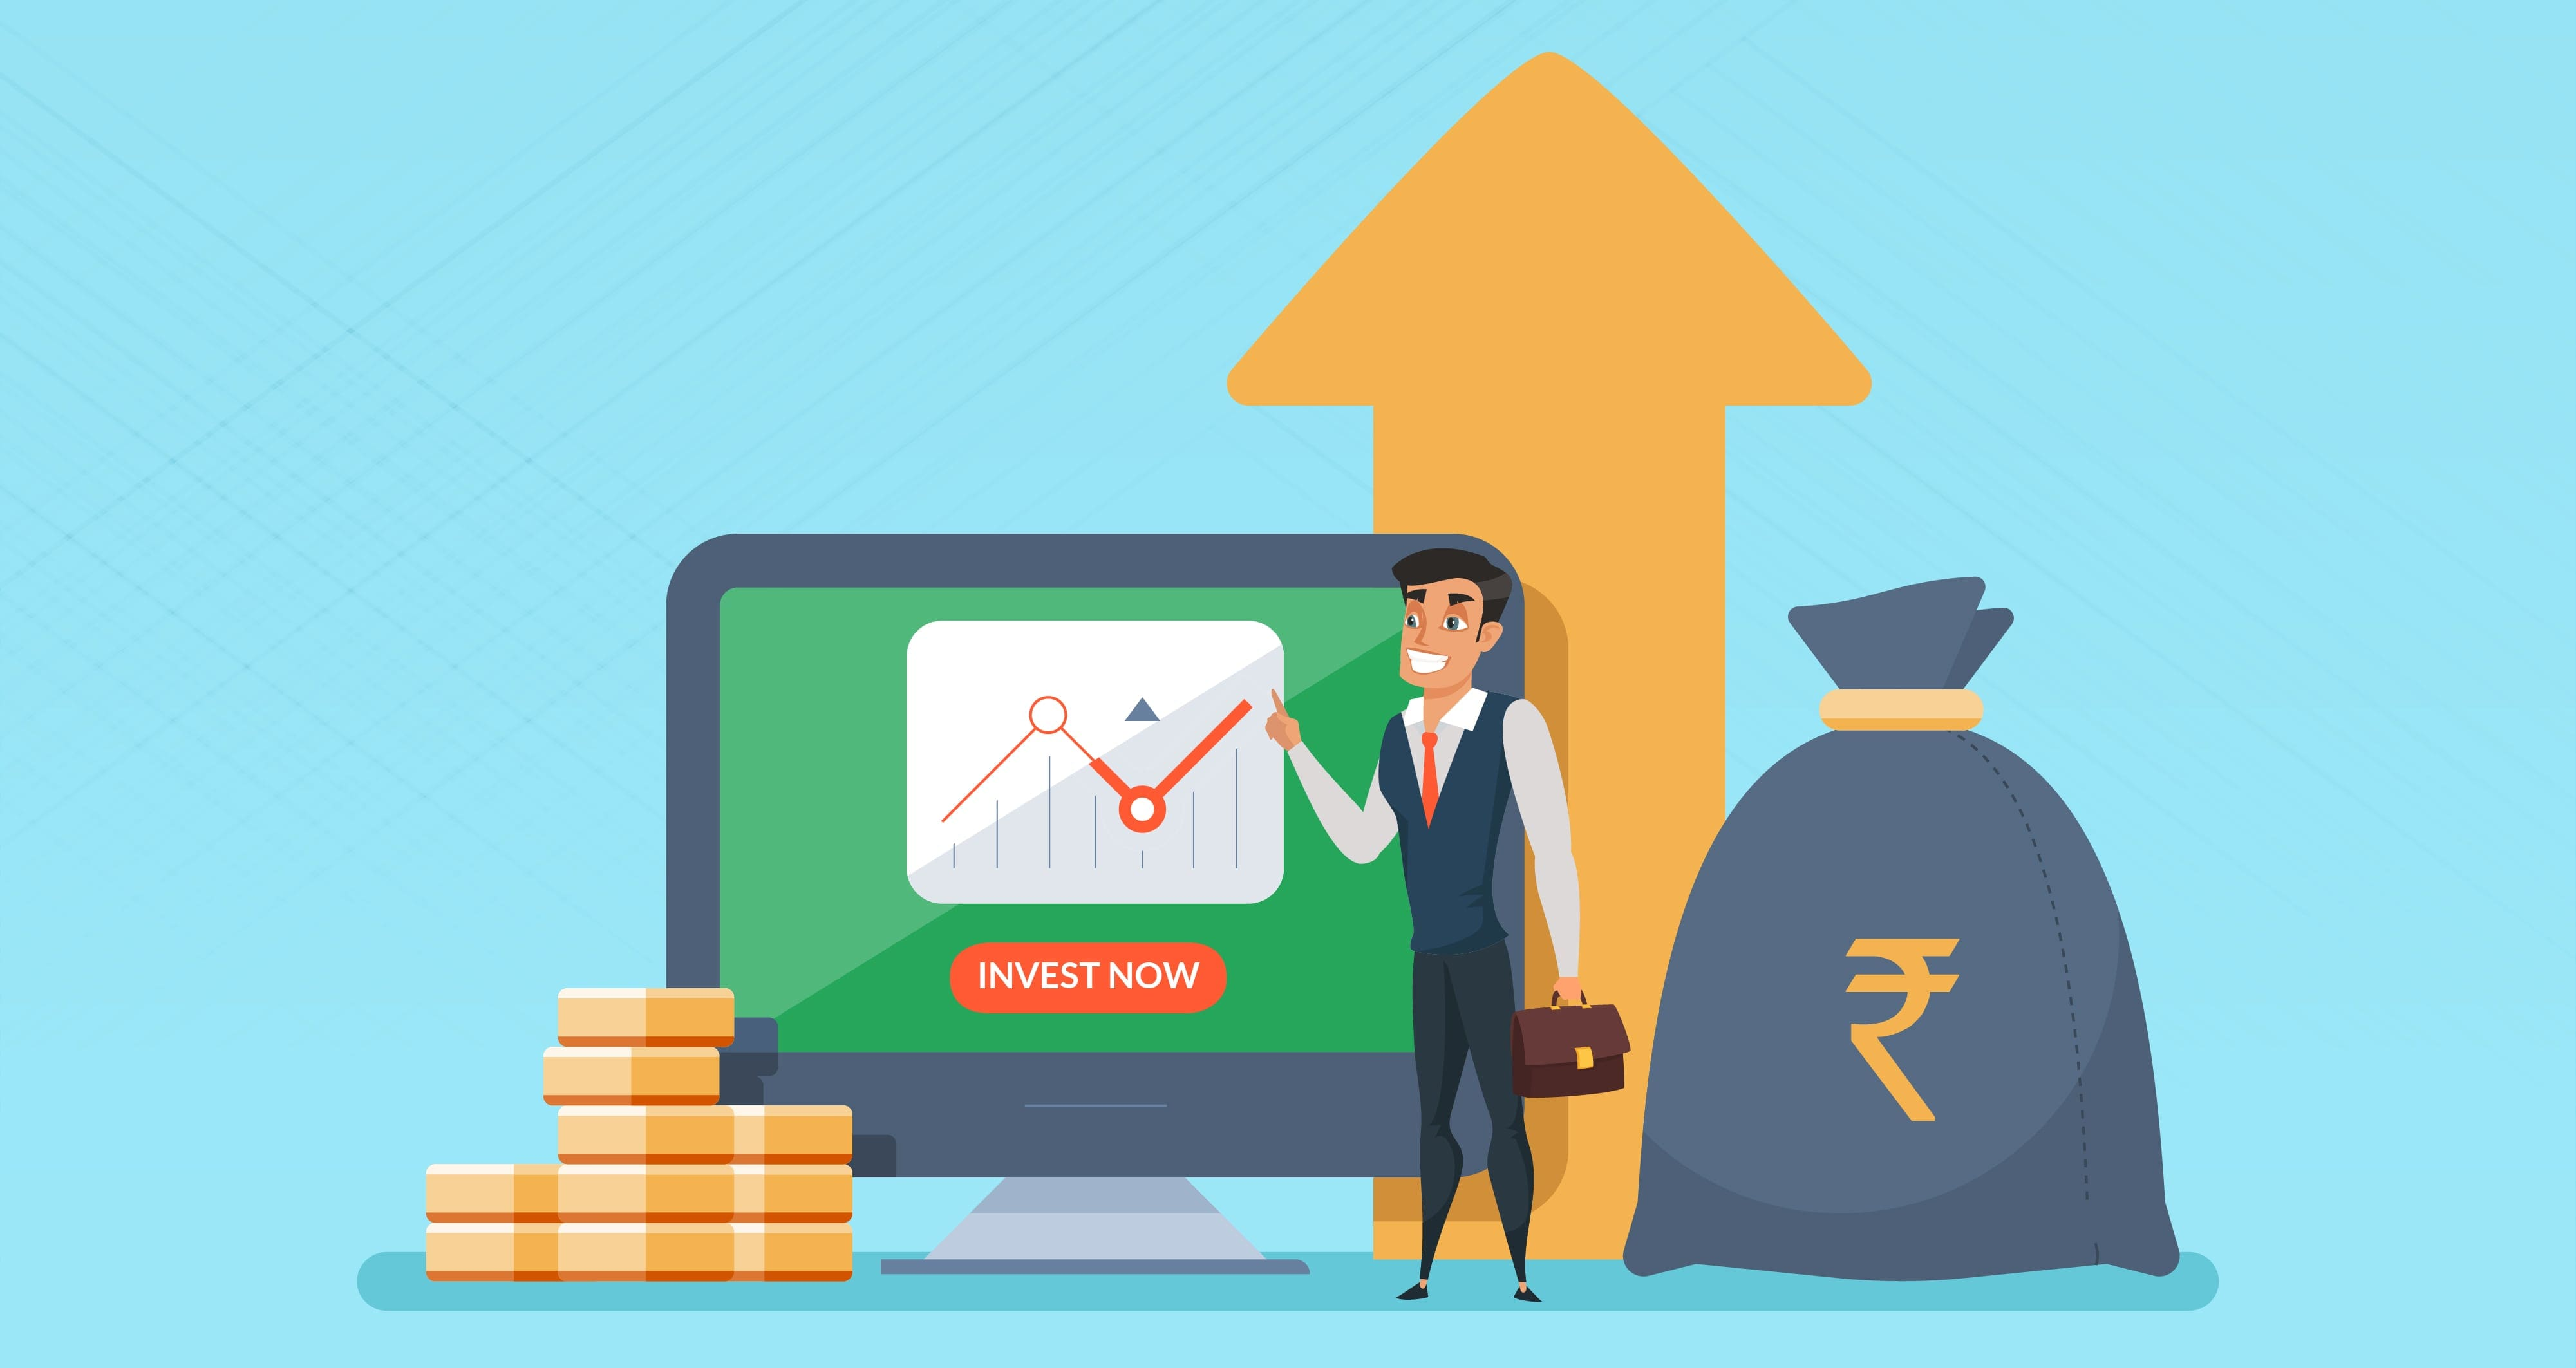 What are the most unusual mutual funds in terms of focus area